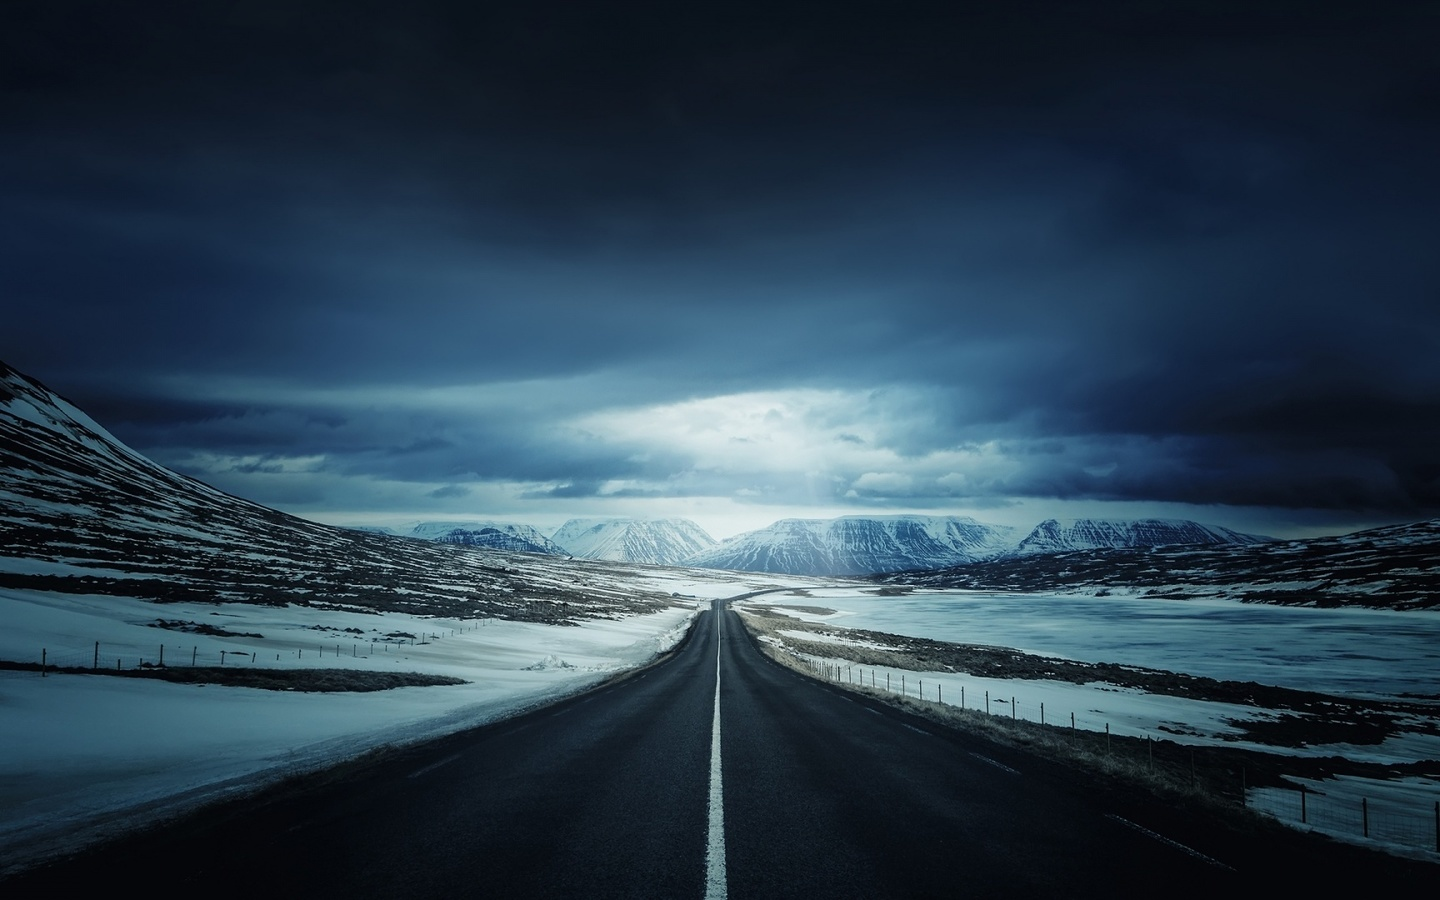 iceland, road, mountain, clouds, sky